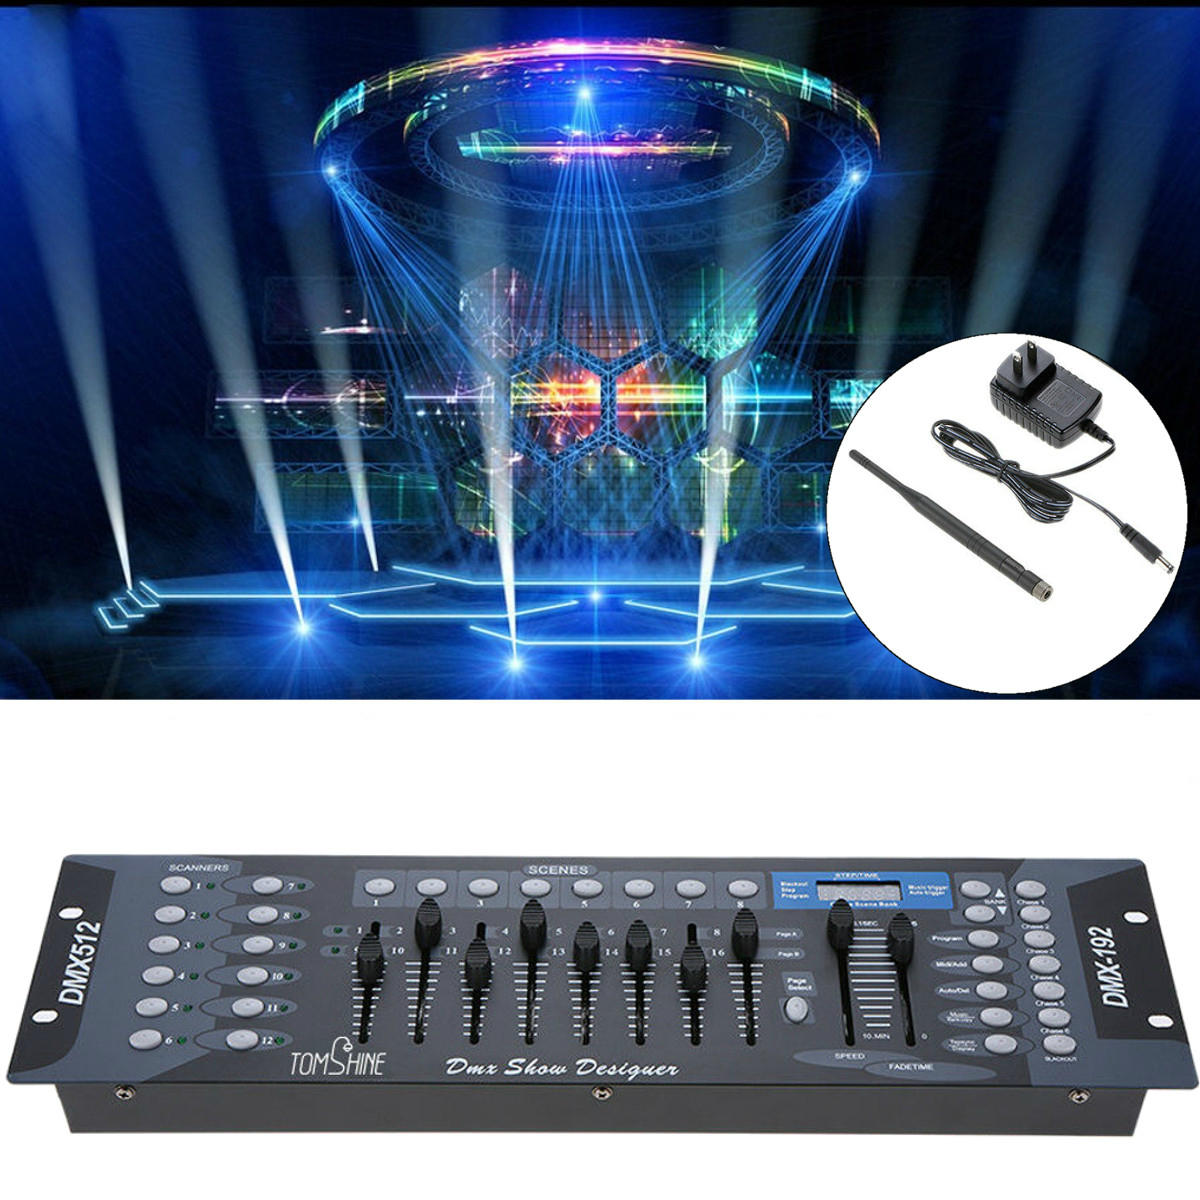 192 Channels Dmx512 Light Controller Show Designer Console For Stage Us Plug